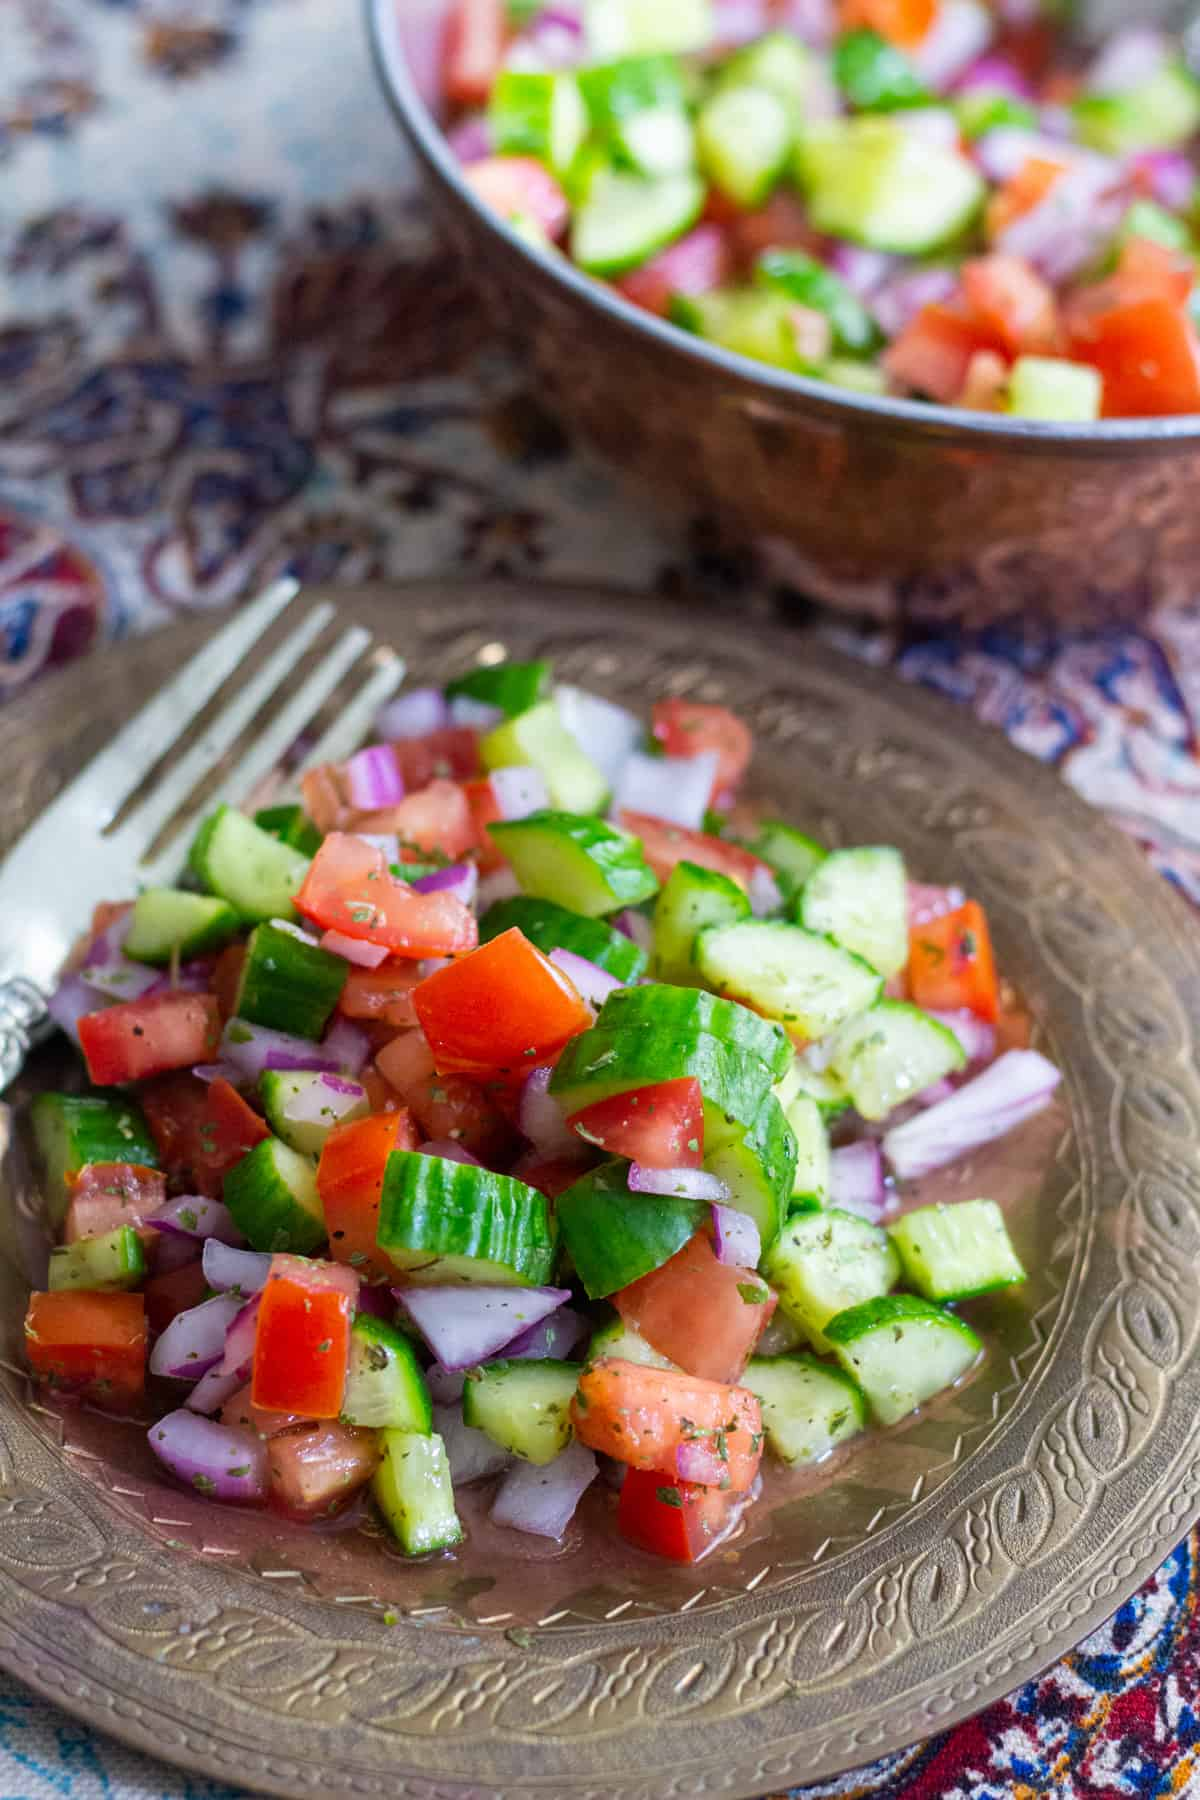 Persian salad shirazi served on a plate with a fork on the side.